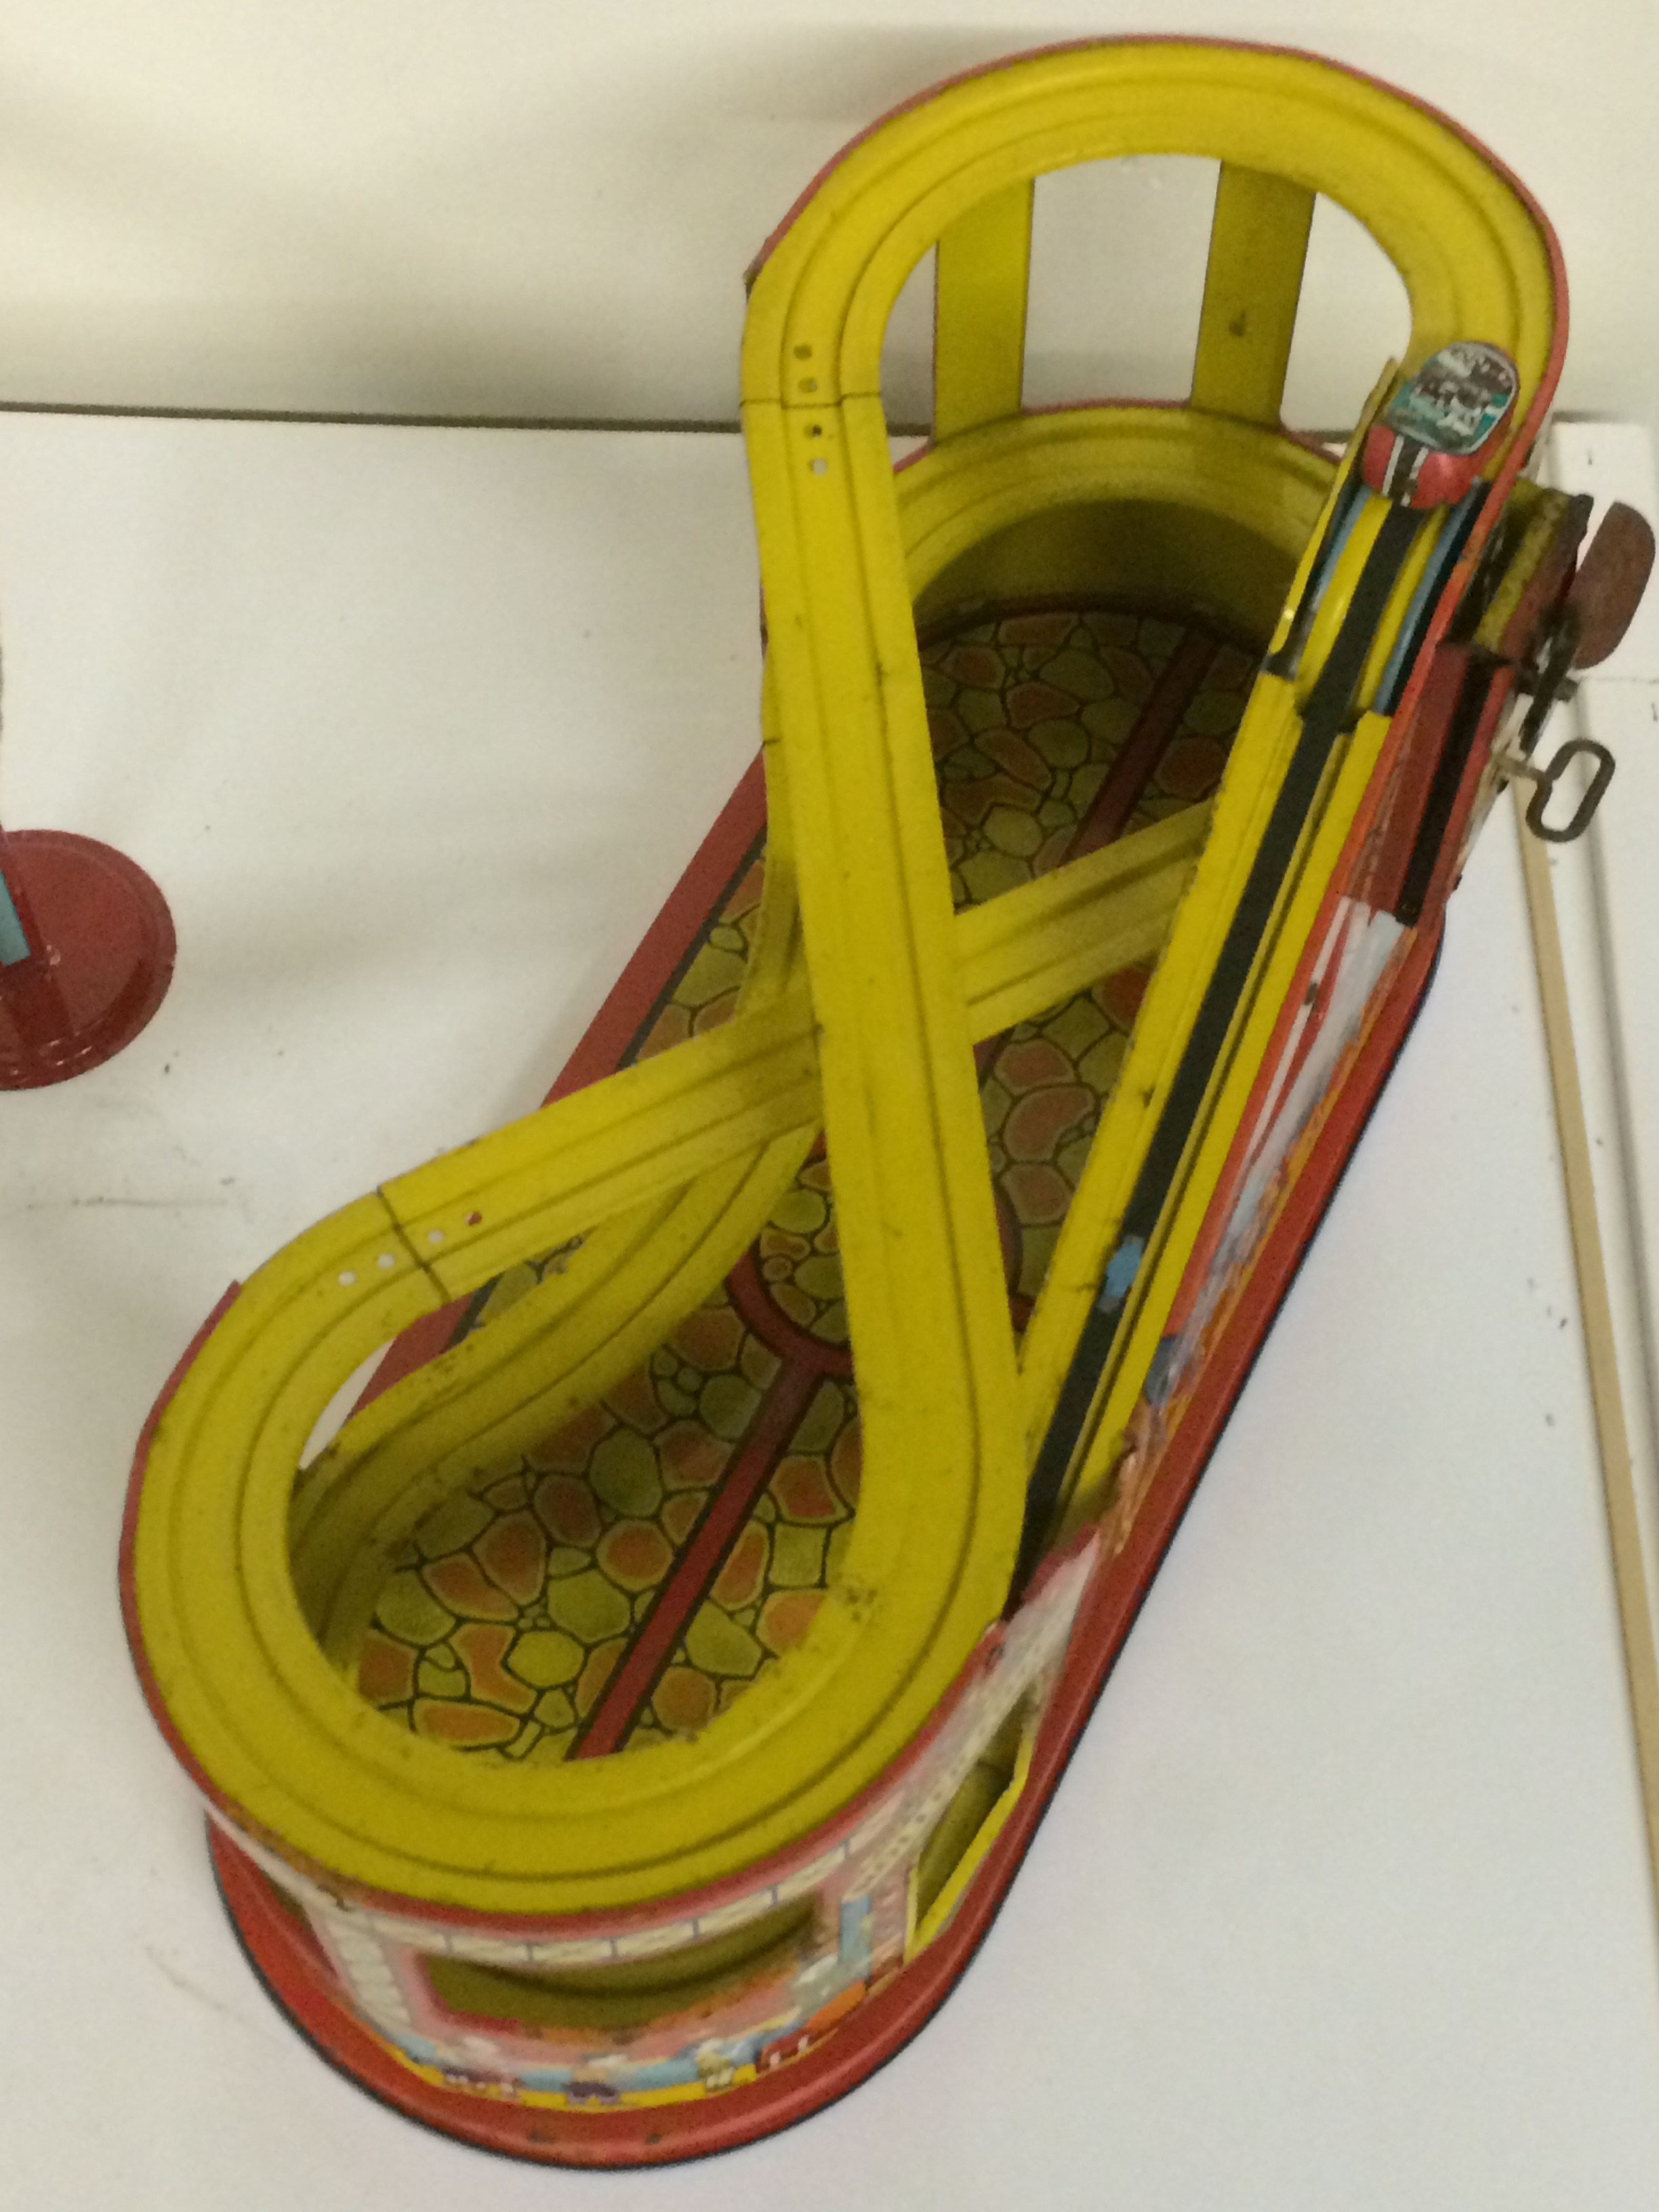 Exhibit: Playtime: Roller Coaster Toy Gallery - Chein Wind Up lift mechanism Roller Coaster c. 1960's